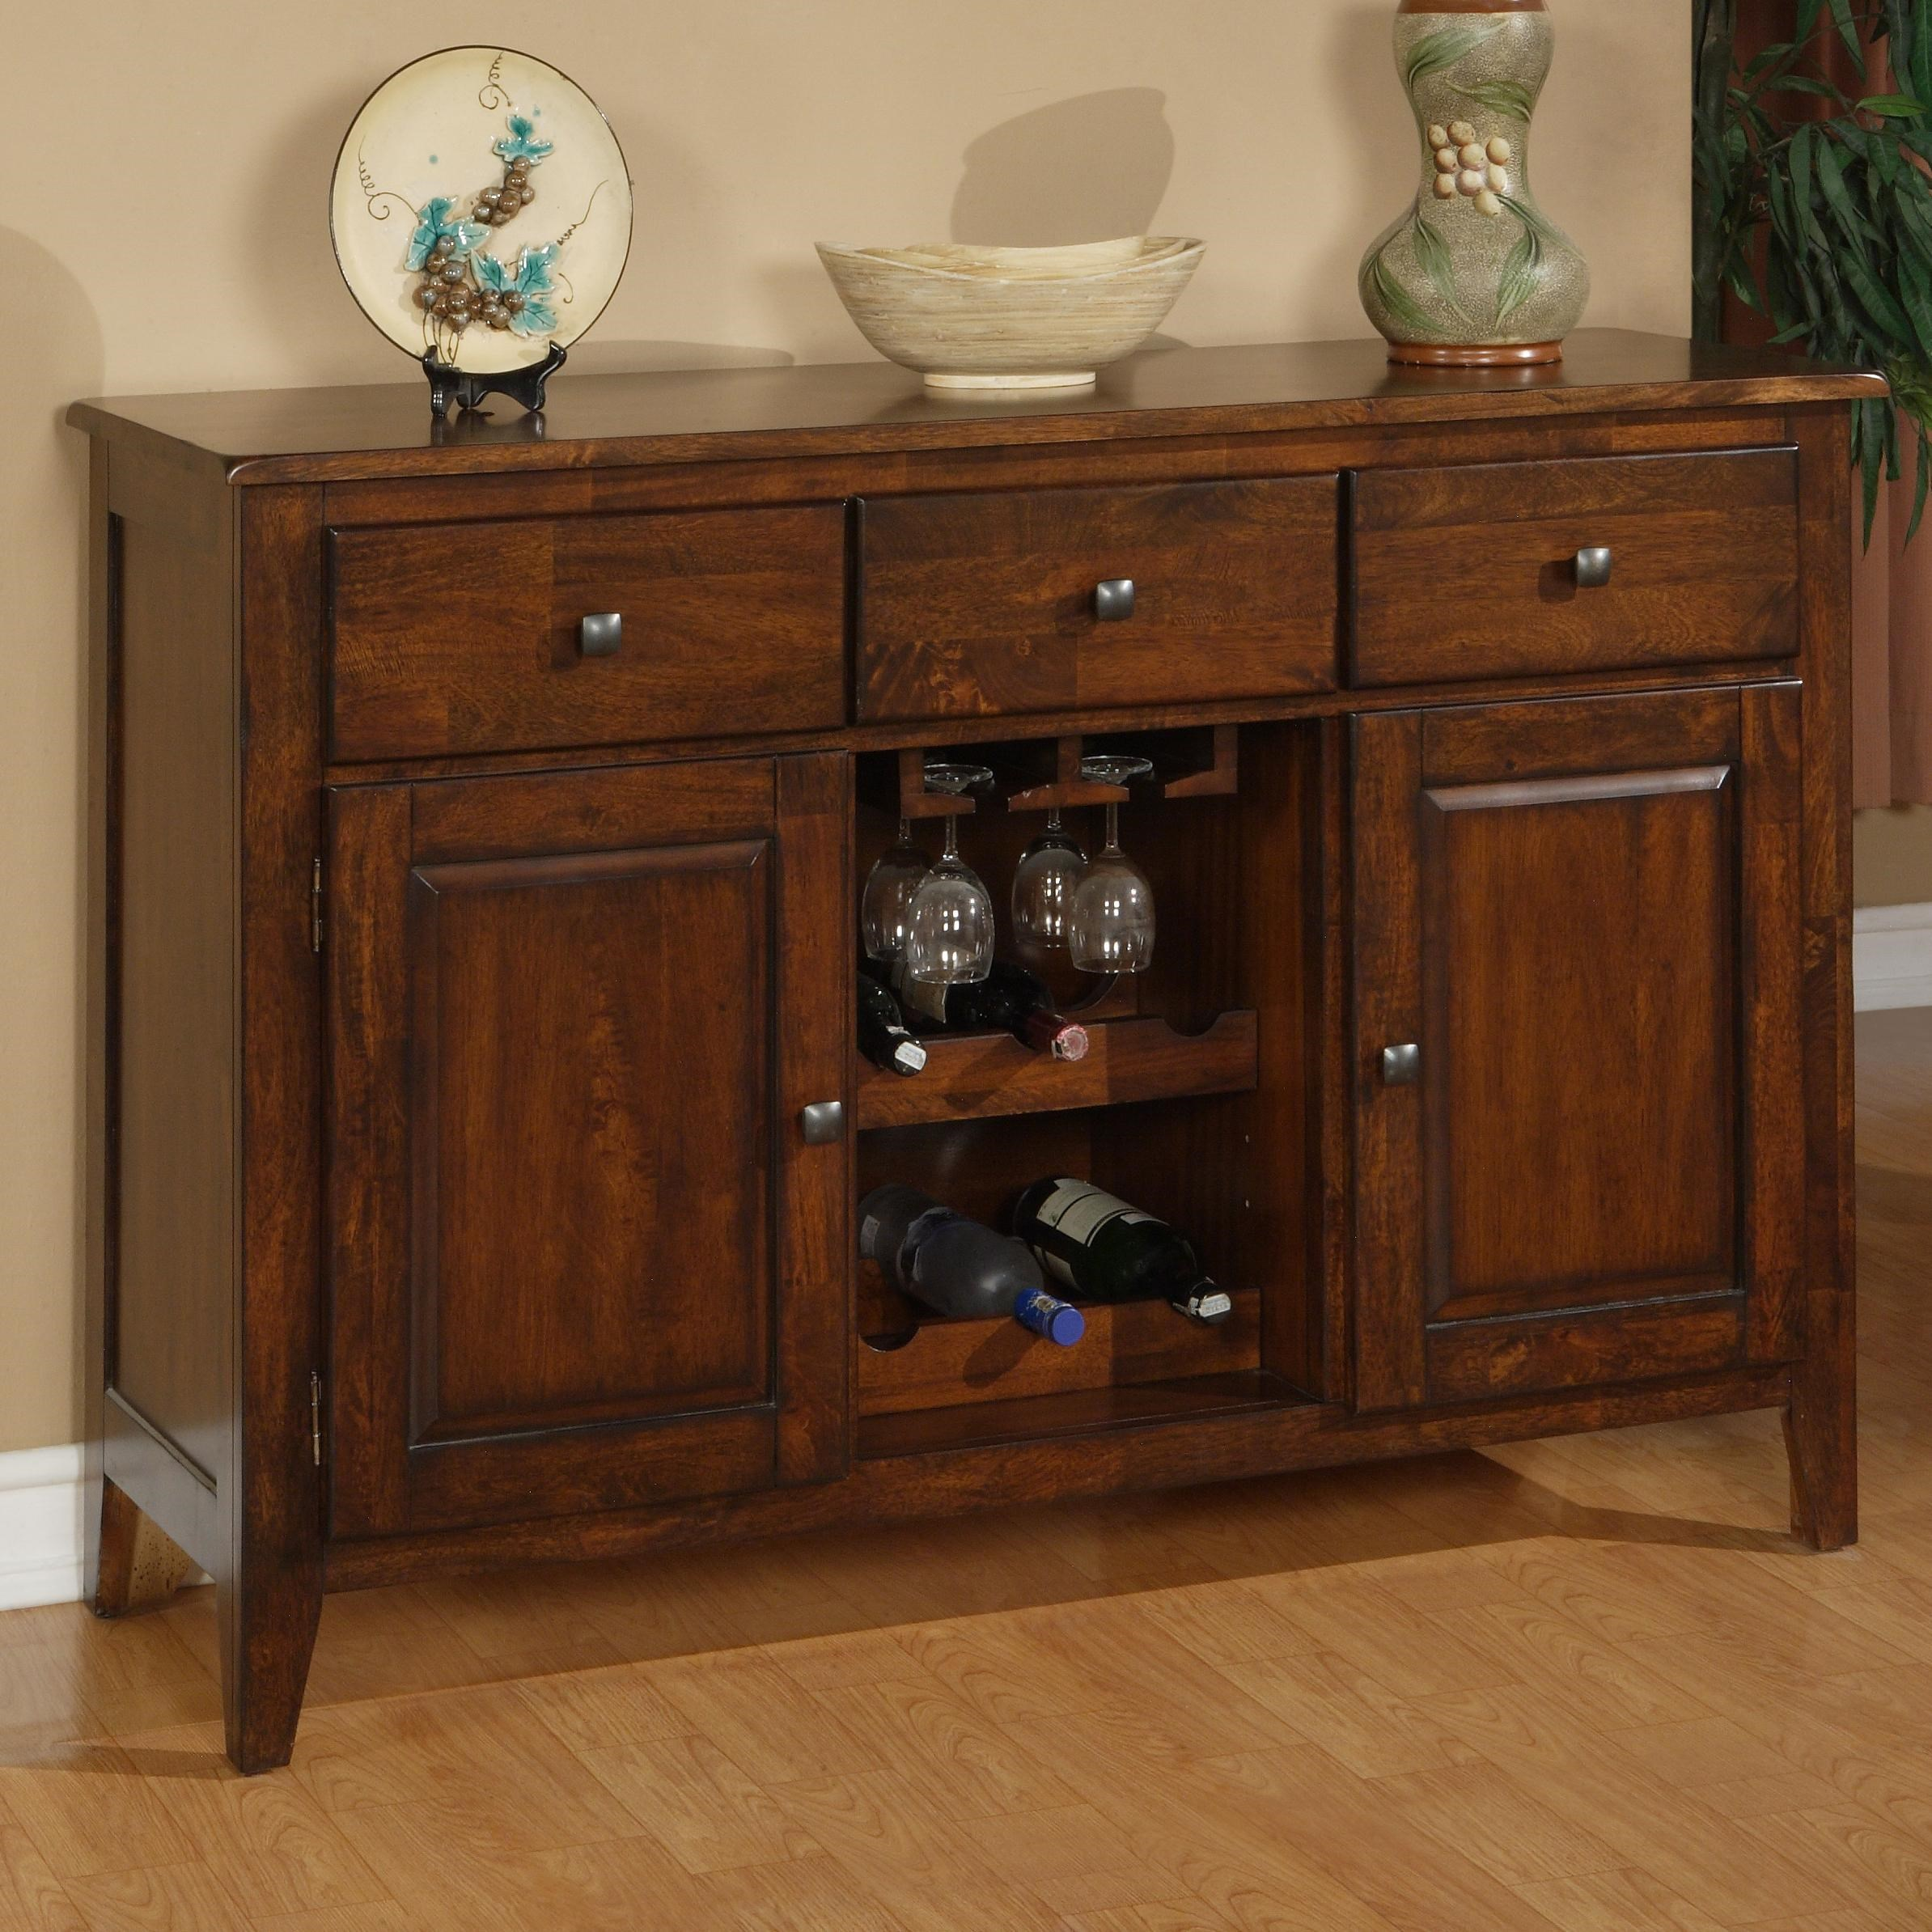 Holland House 1279 Sideboard